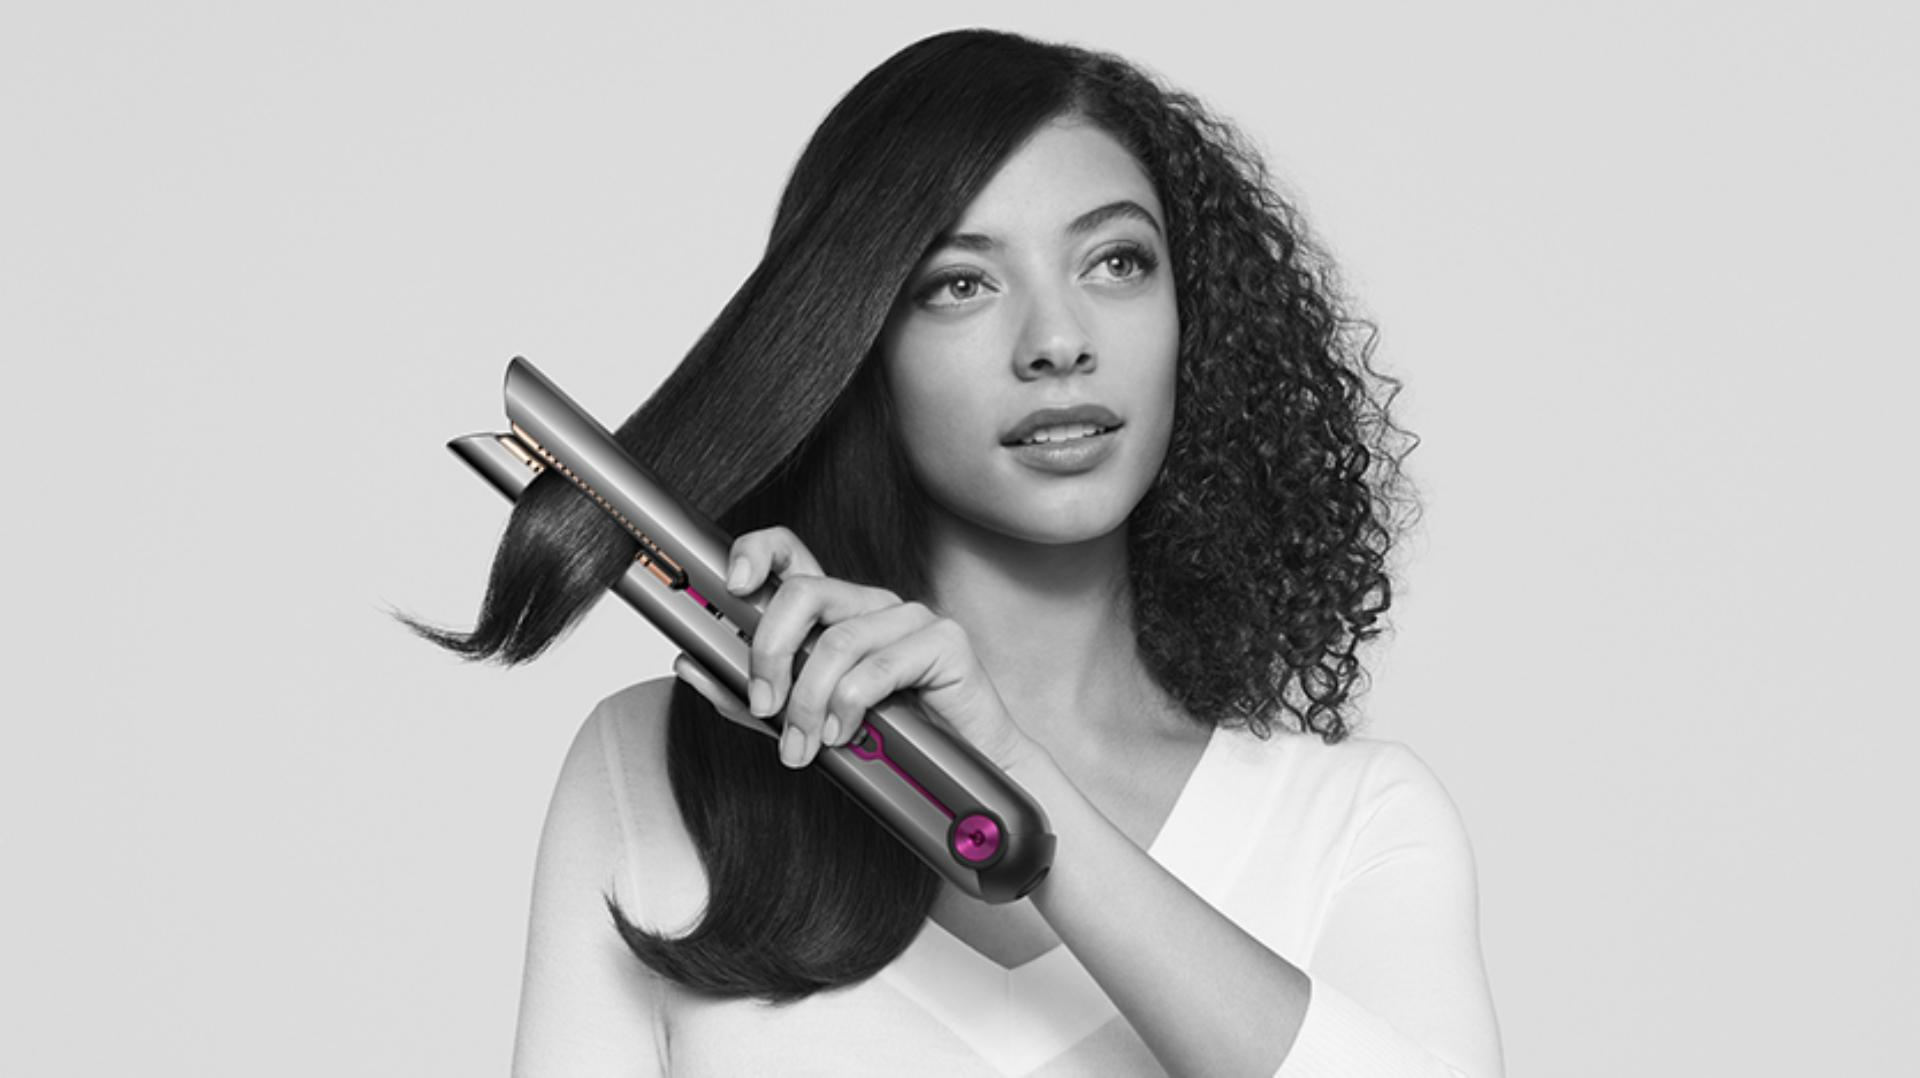 Female model holding the Dyson Corrale straightener in one hand